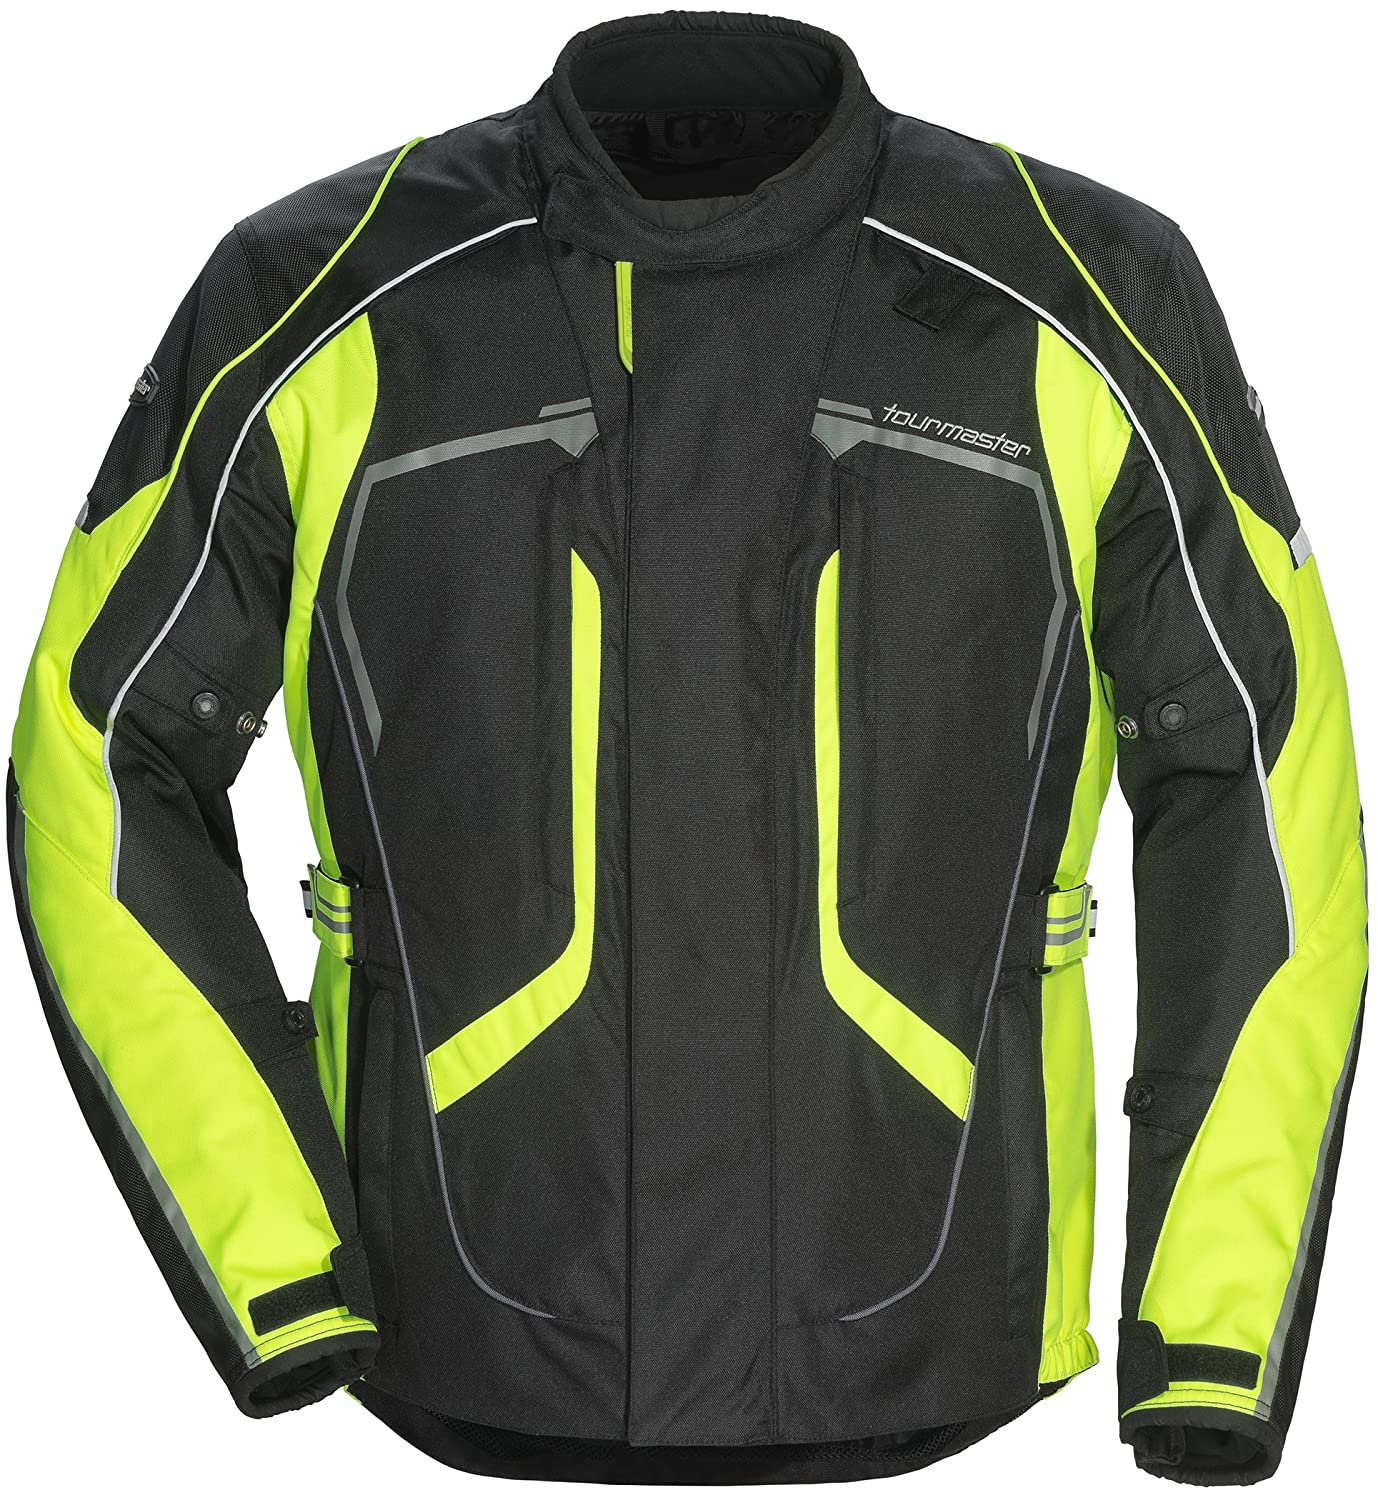 Tourmaster Advanced Men's Textile Motorcycle Jacket (Black, Tall X-Large) 8736-0105-17